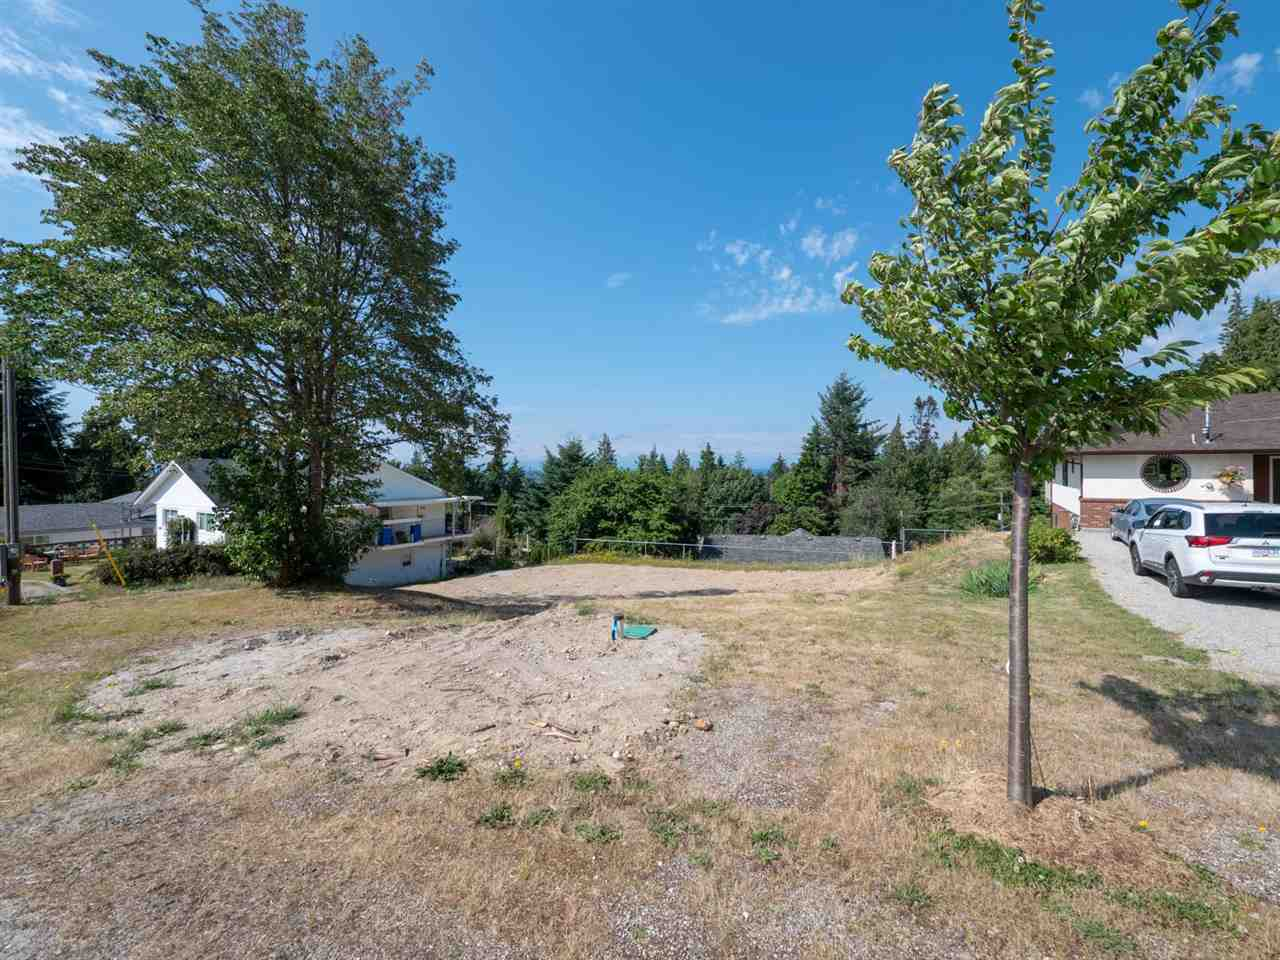 Check out this Davis Bay VIEW LOT located on a quiet street in an established neighbourhood. Within walking distance to Davis Bay esplanade, local shops, cafes and only minutes away from endless recreation. Lot is cleared and ready for your building plans with a new septic system recently installed. Call your agent today to check out the possibilities.